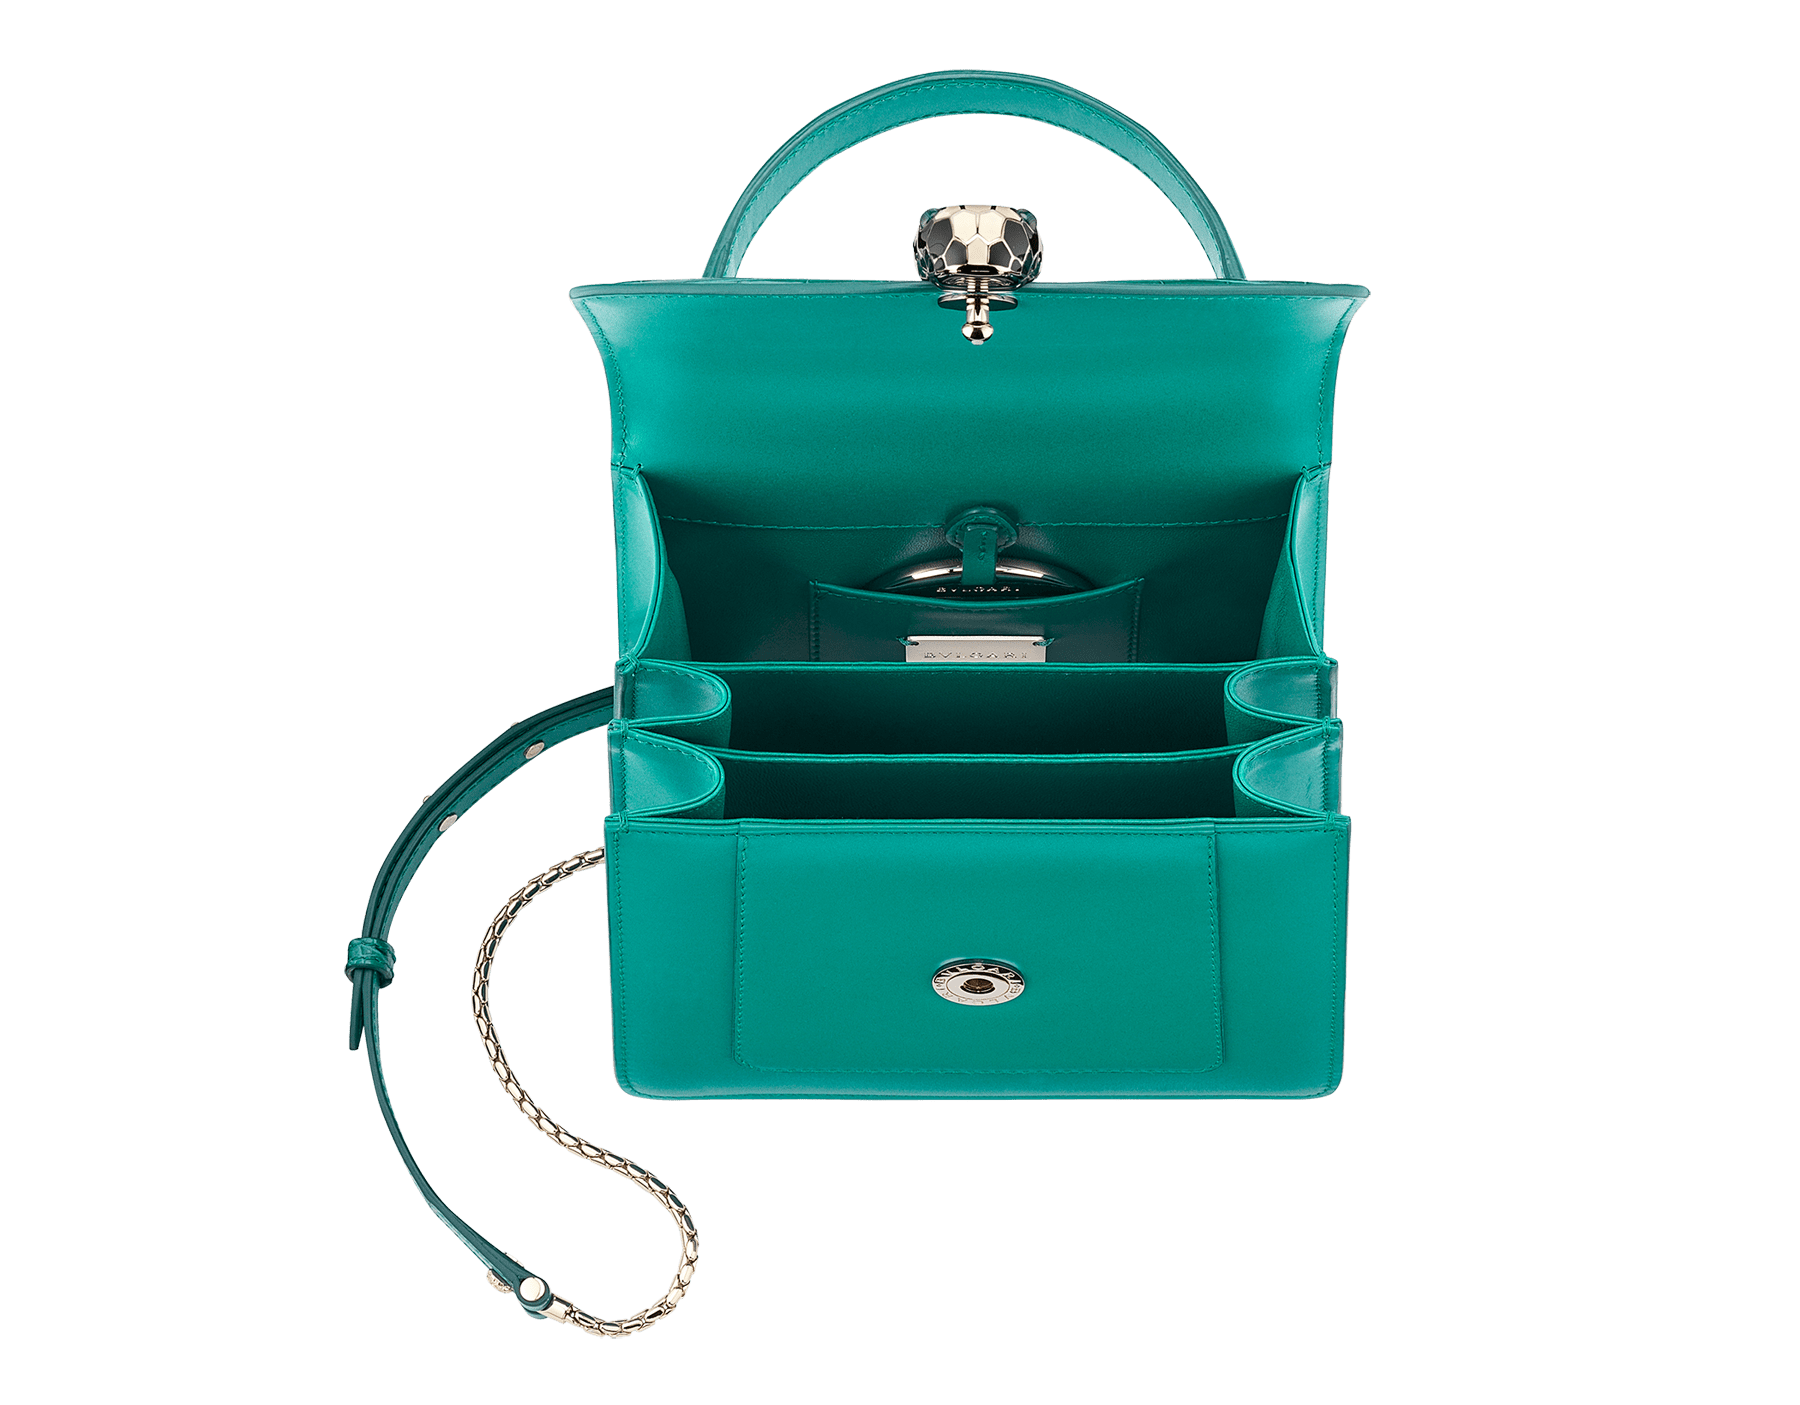 Serpenti Forever crossbody bag in tropical turquoise shiny croco skin and smooth calf leather. Snakehead closure in light gold plated brass decorated with black and white enamel, and green malachite eyes. 288492 image 4